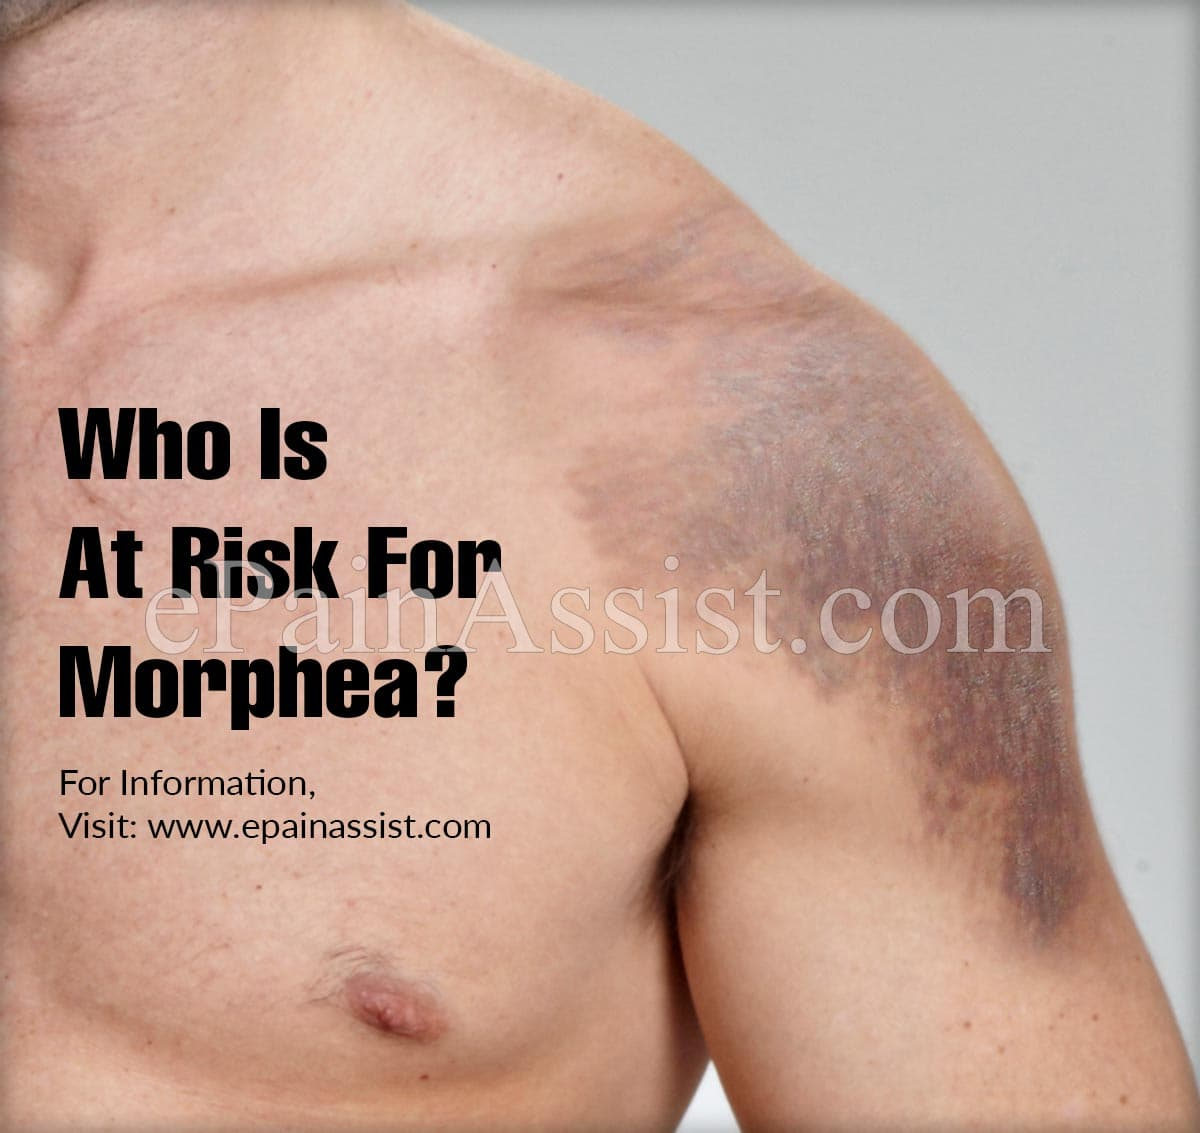 Who Is At Risk For Morphea?